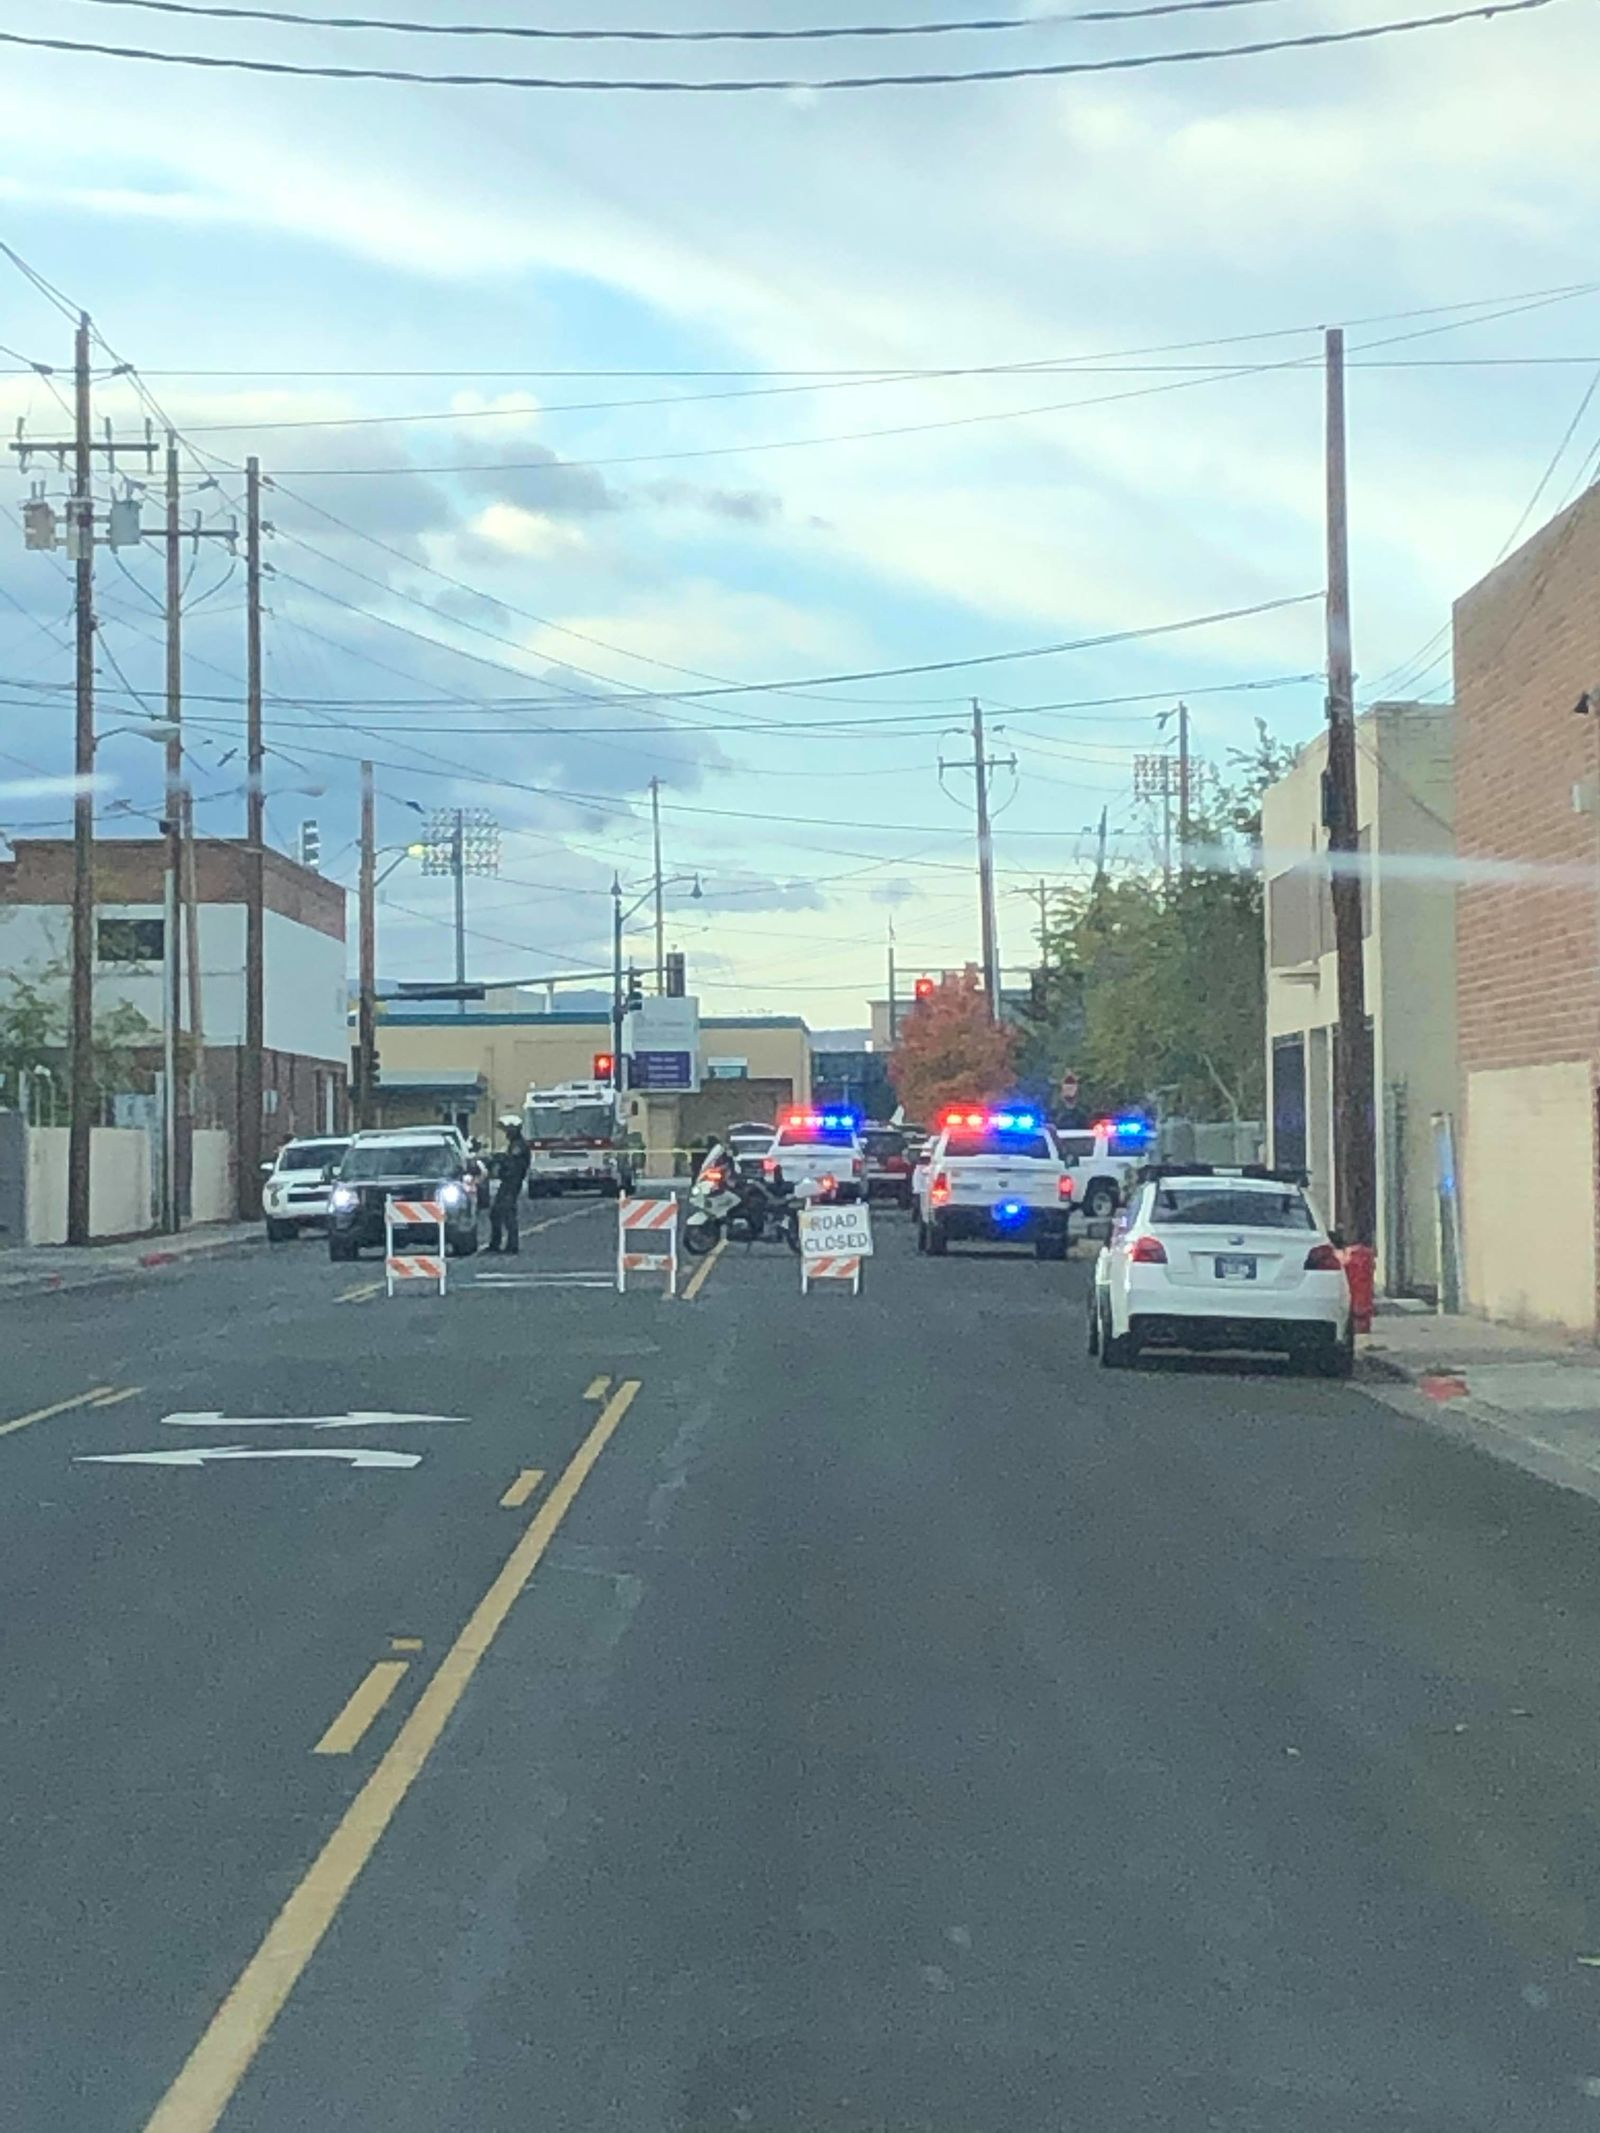 Washoe County Sheriff's Office investigating a fatal pedestrian crash involving a Reno Fire Department vehicle on 4th Street. (Photo by Jesse Richards)